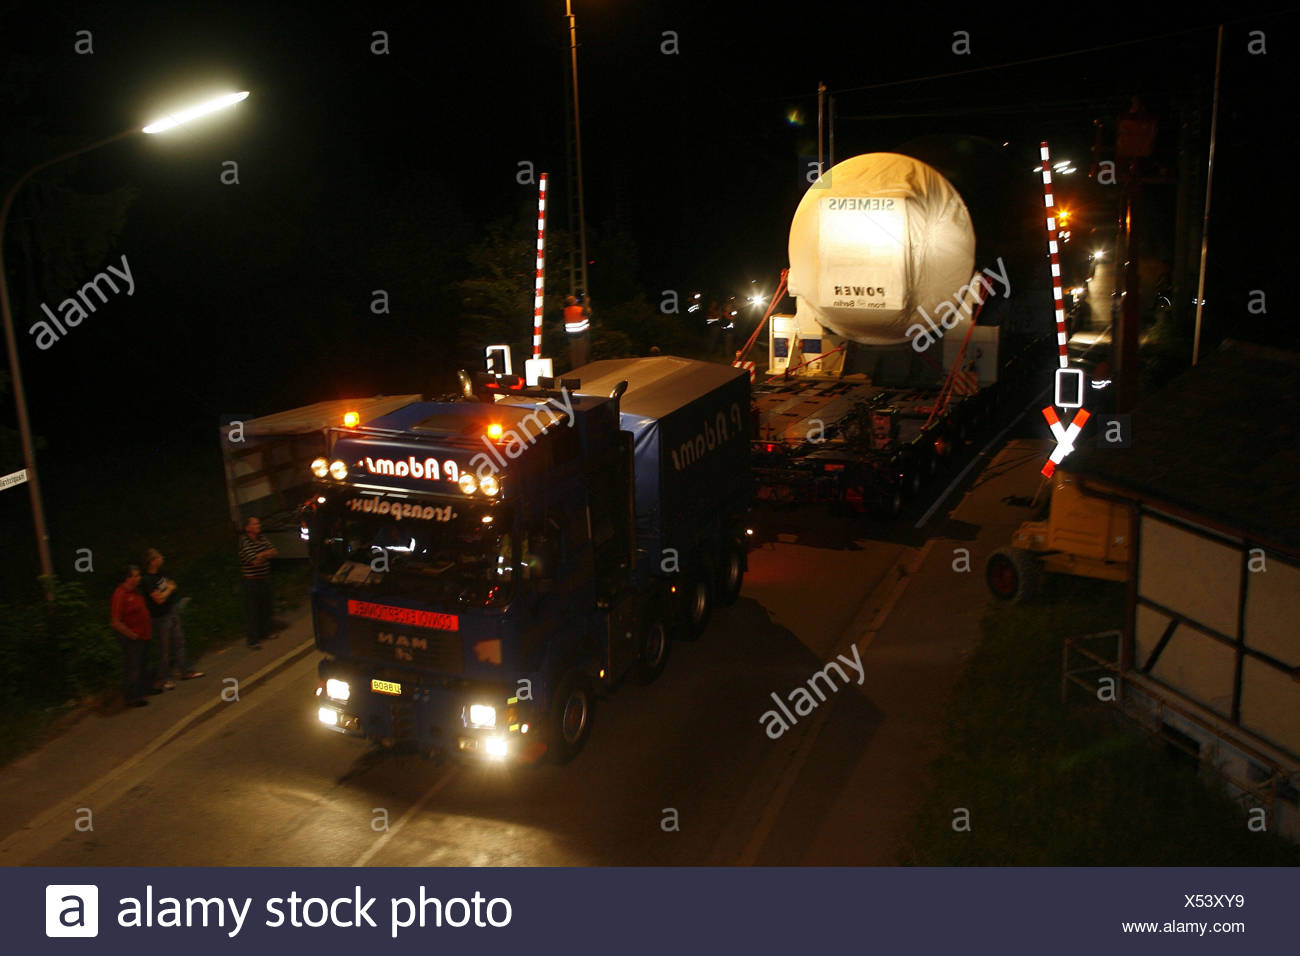 Severe load transport, power station cuts - Stock Image